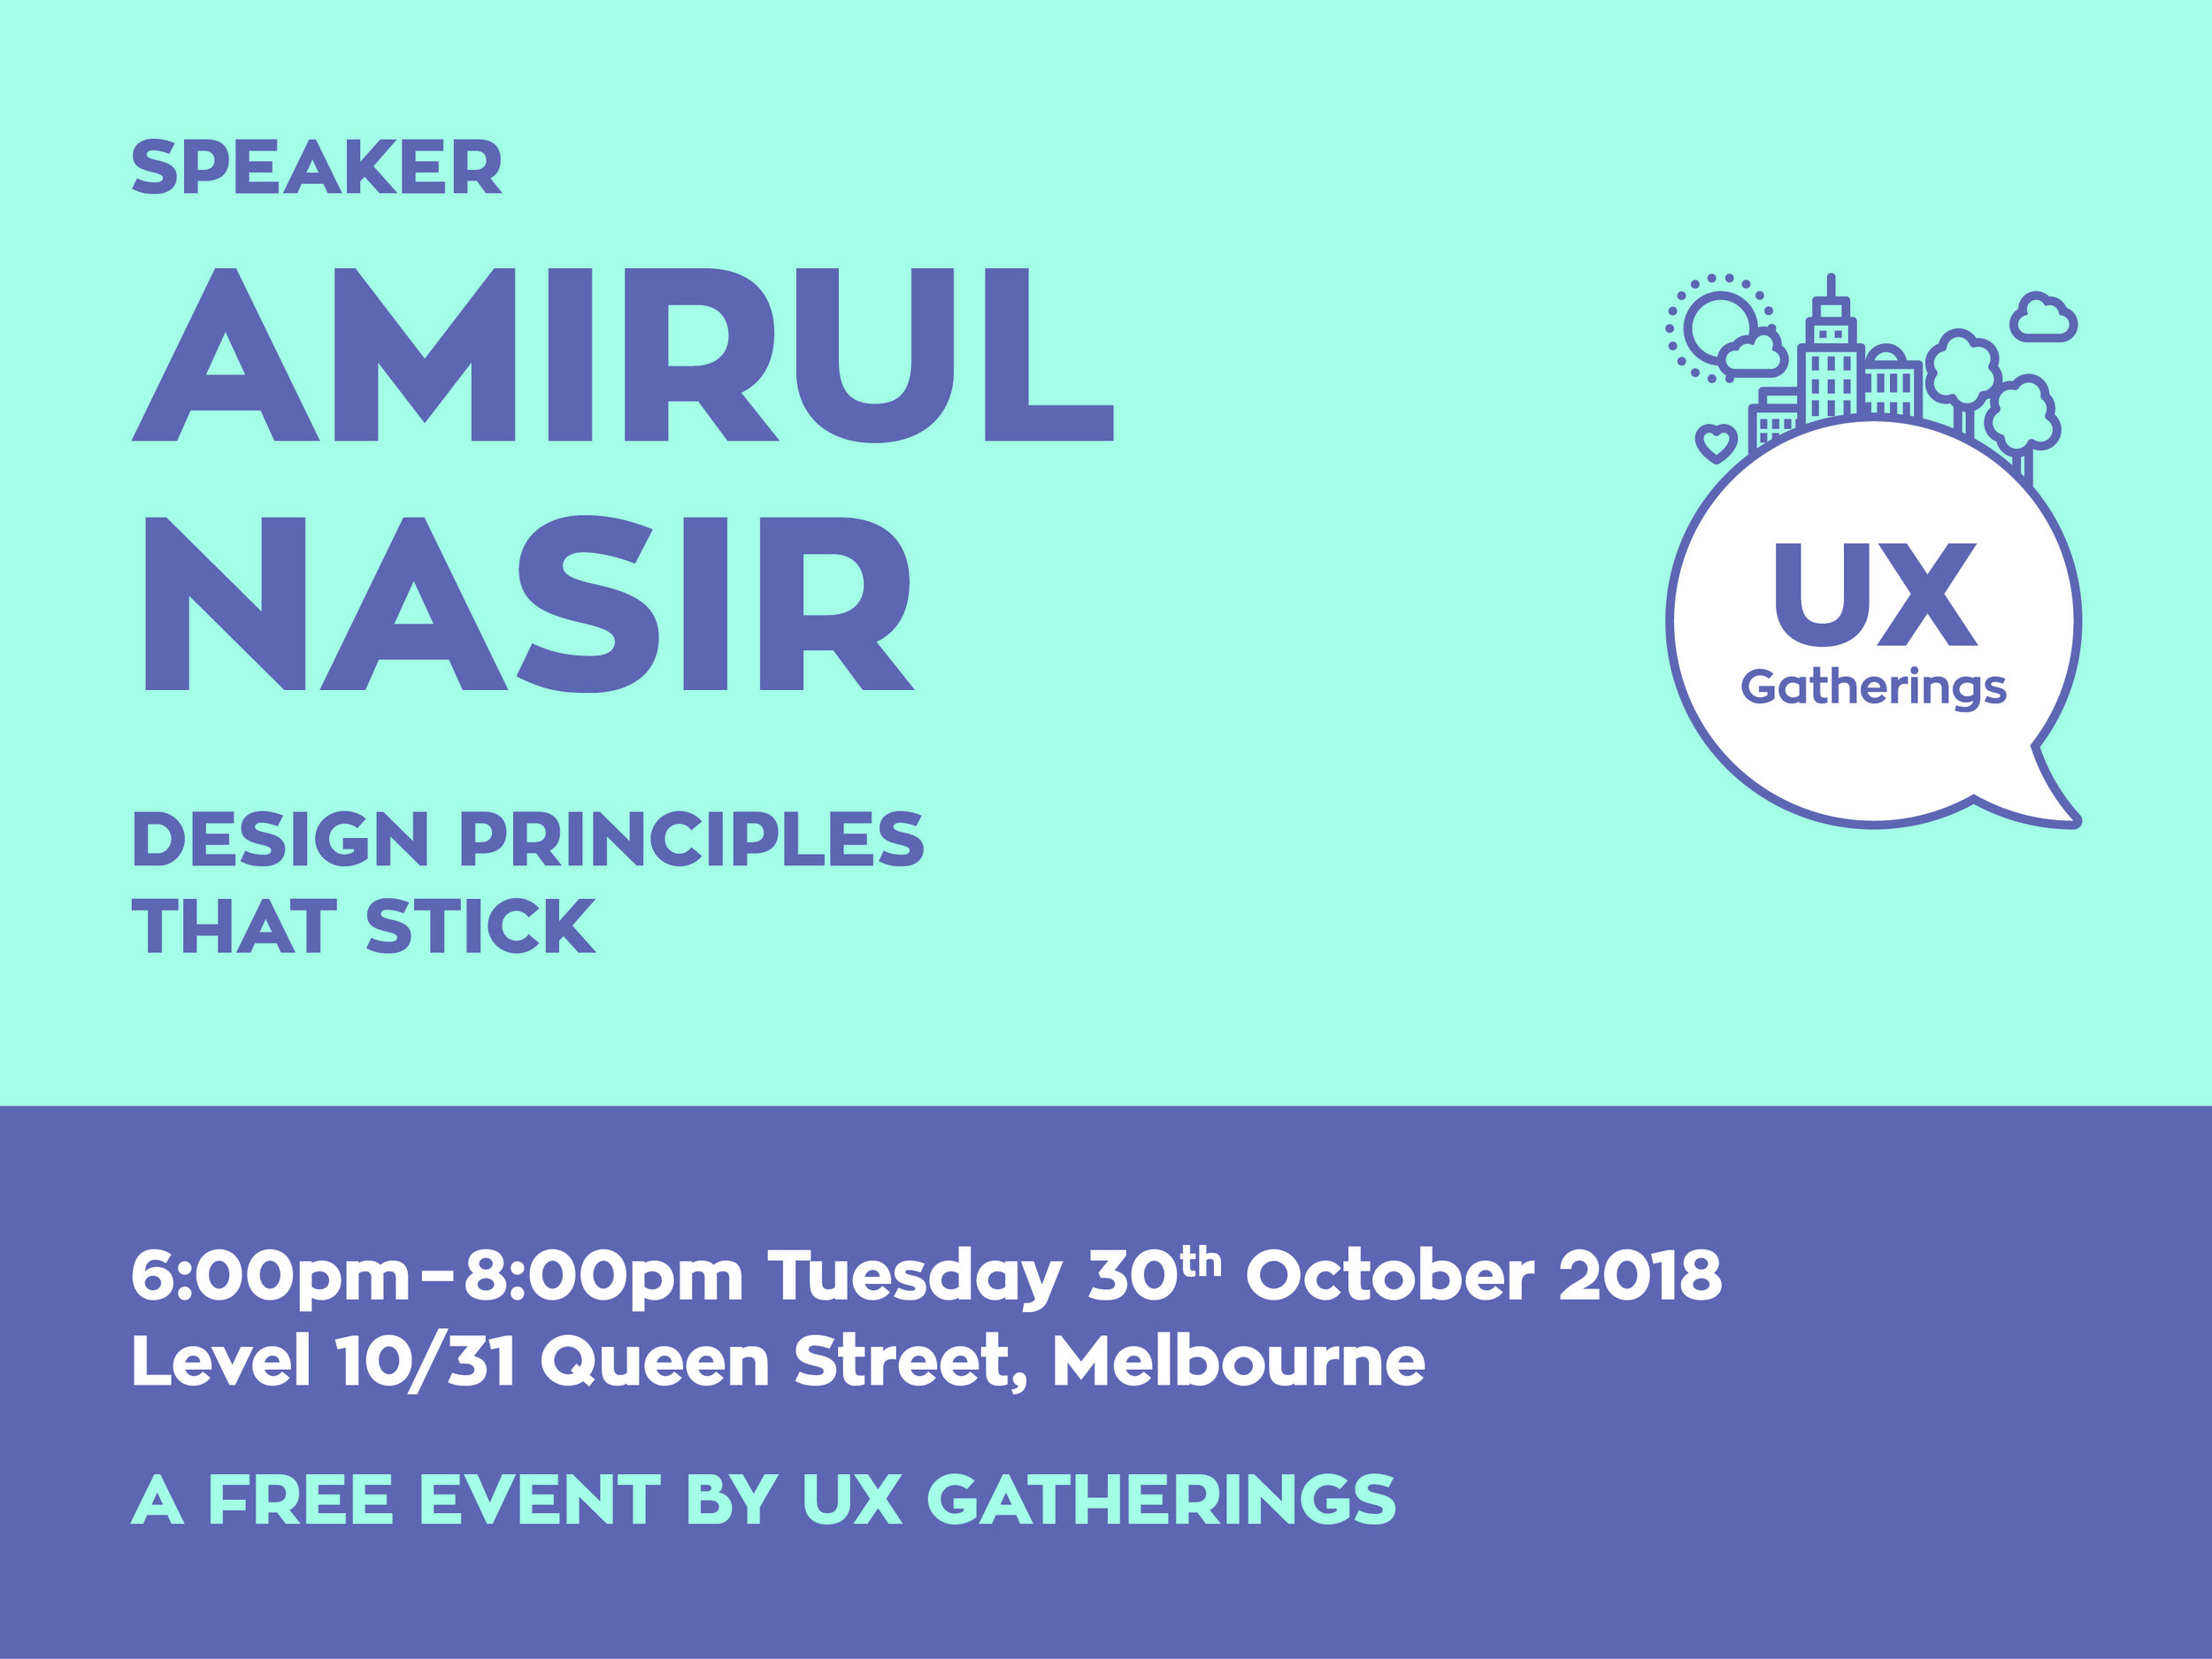 """Amirul Nasir's talk for UX Gatherings titled """"Design Principles That Stick"""" is on 30 October 2018 at Culture Amp. 10/31 Queen Street, Melbourne.  UX Gatheirngs is a free monthly event for Melbourne's design community by Rohan Irvine and Renee Carmody."""